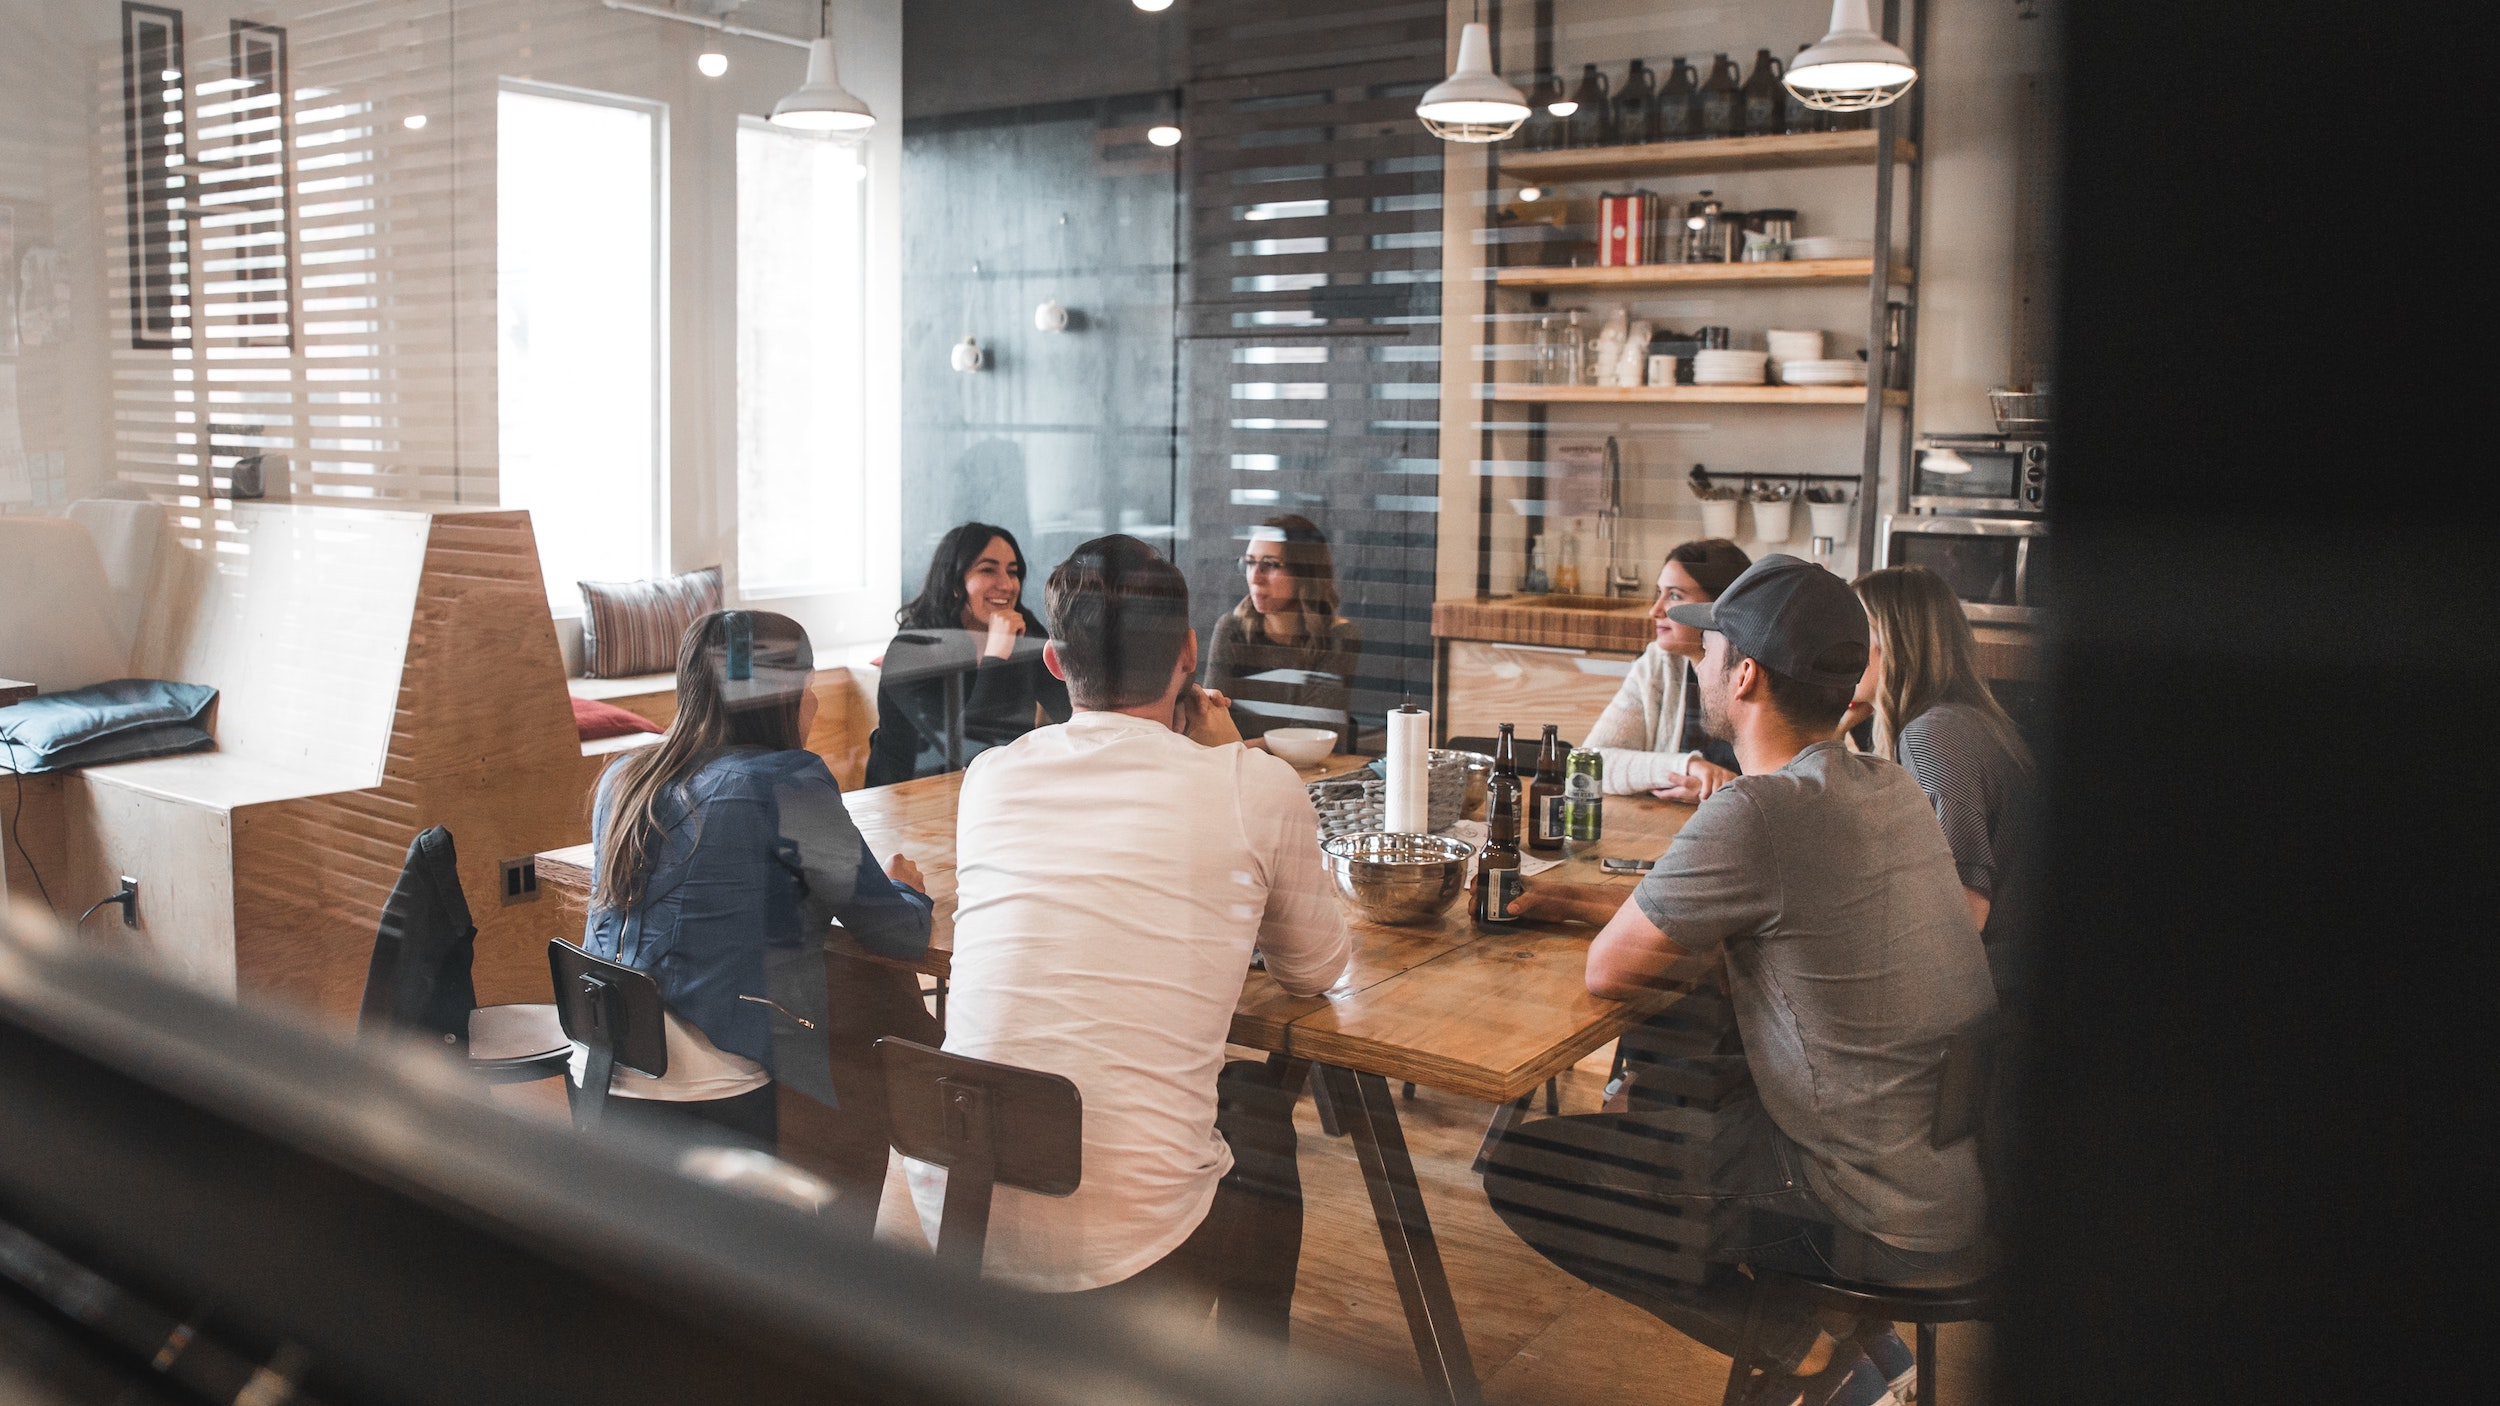 Group of employees working in a room together at a table.